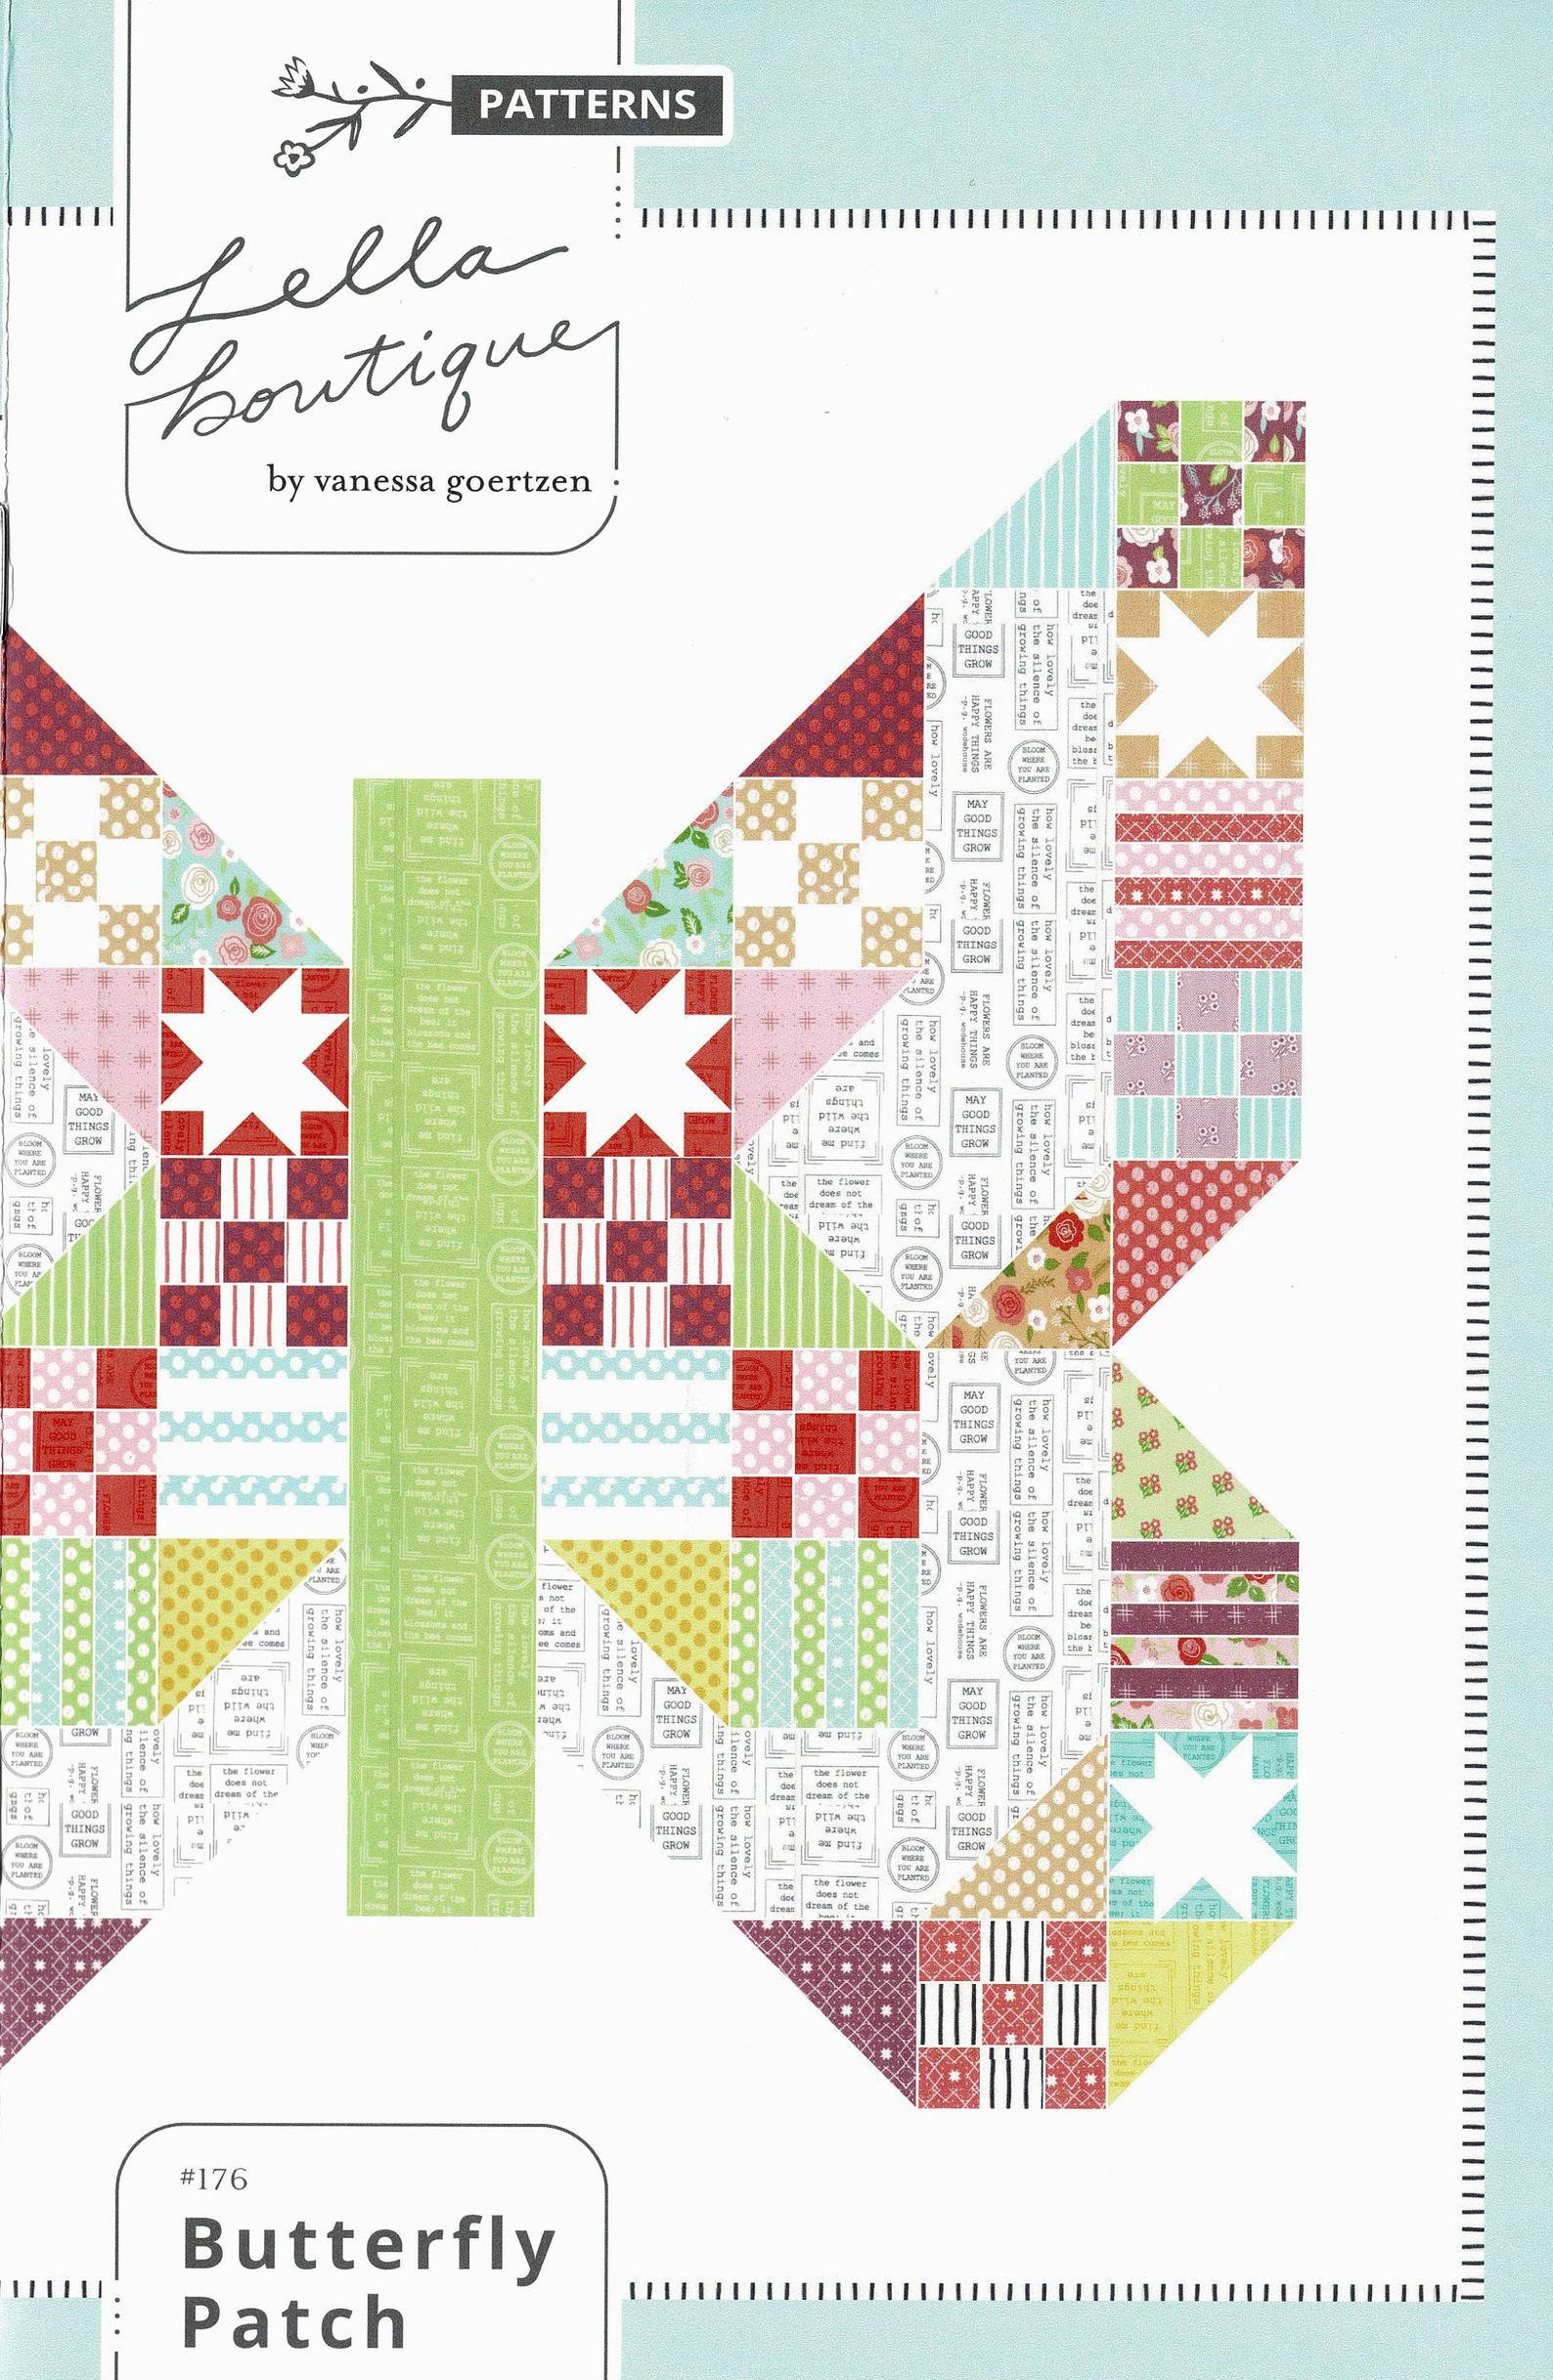 Butterfly Patch Quilt Pattern by Lella Boutique